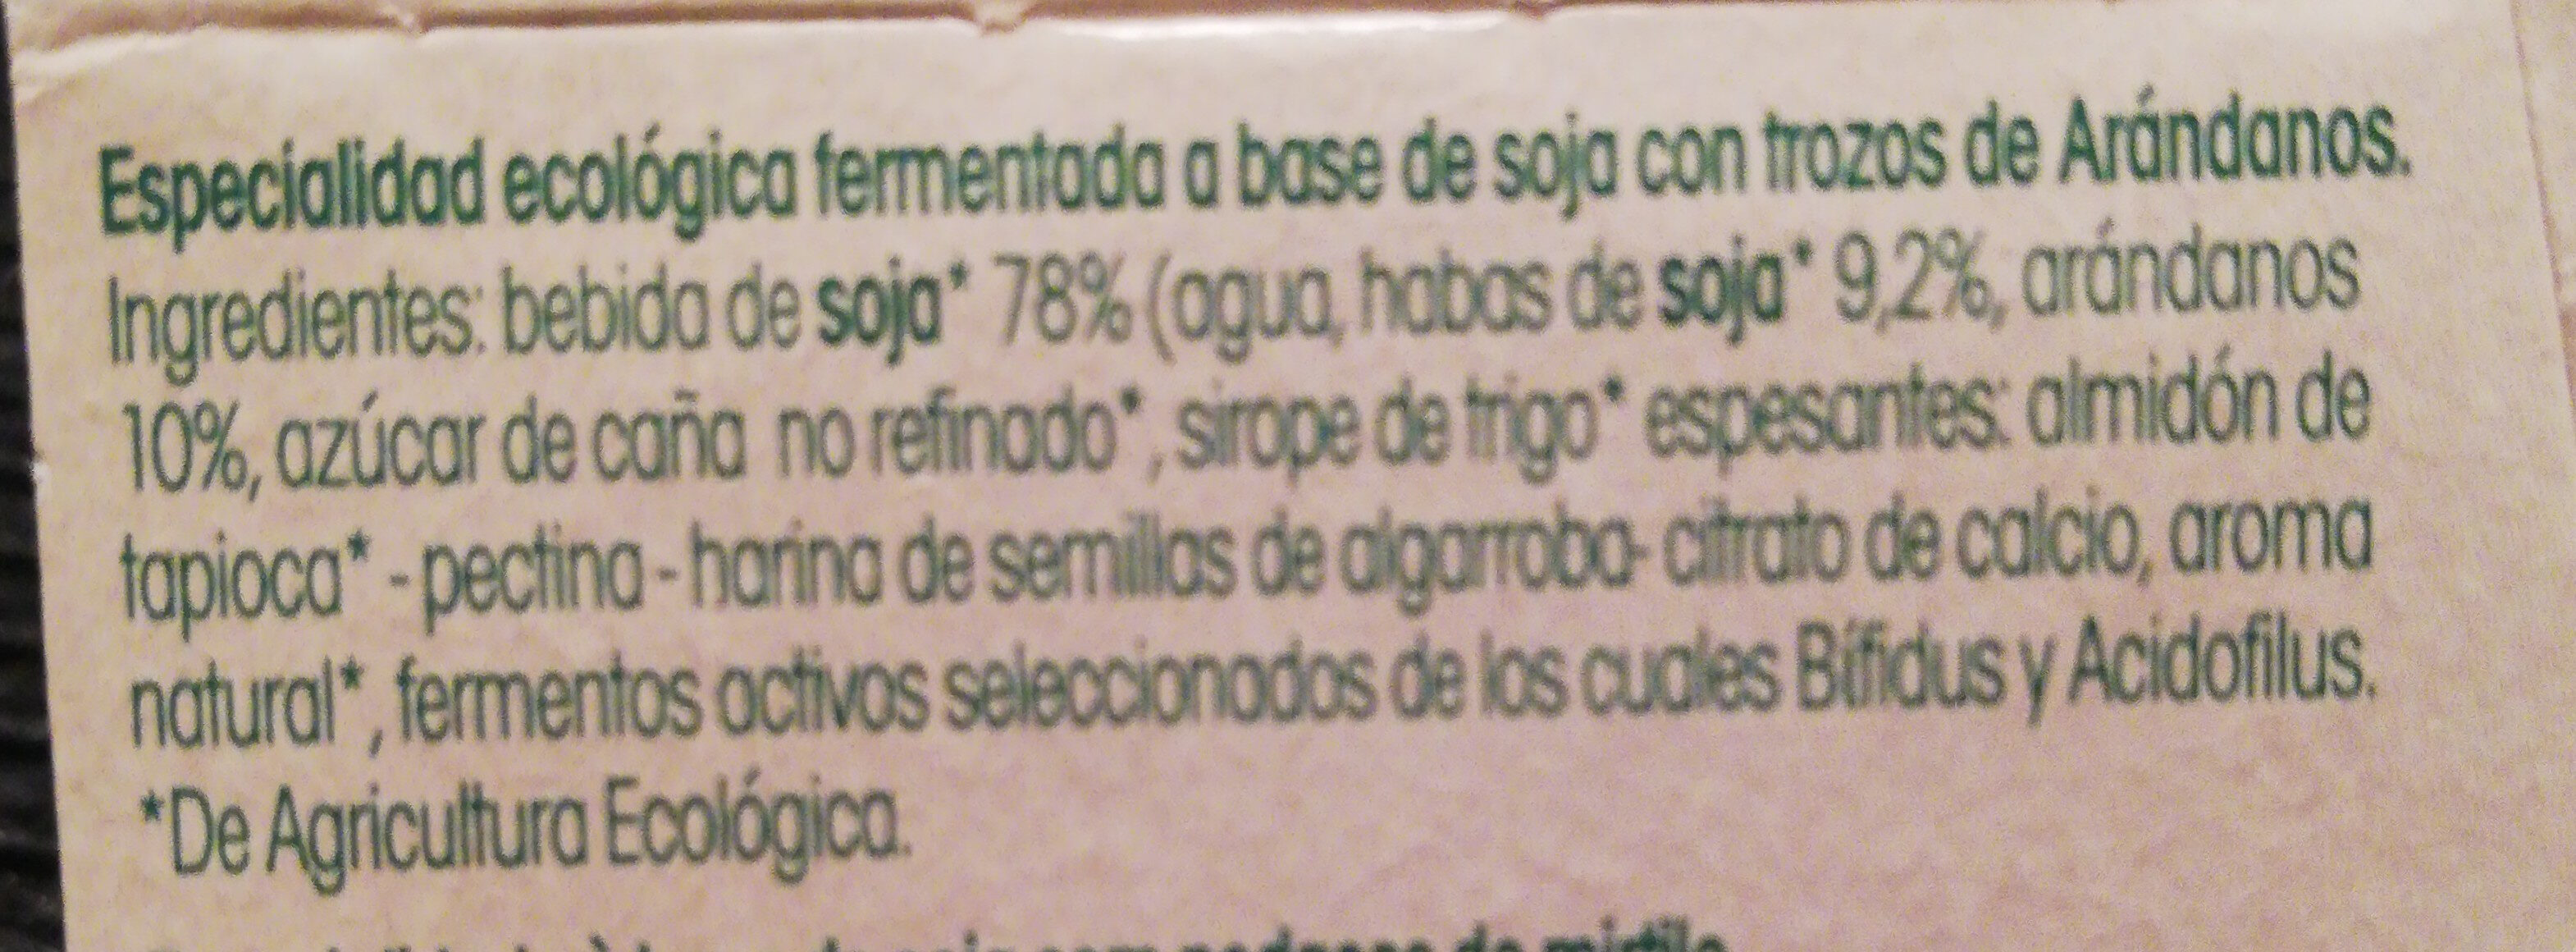 Especialidad vegetal de soja sabor arándanos - Ingredients - es